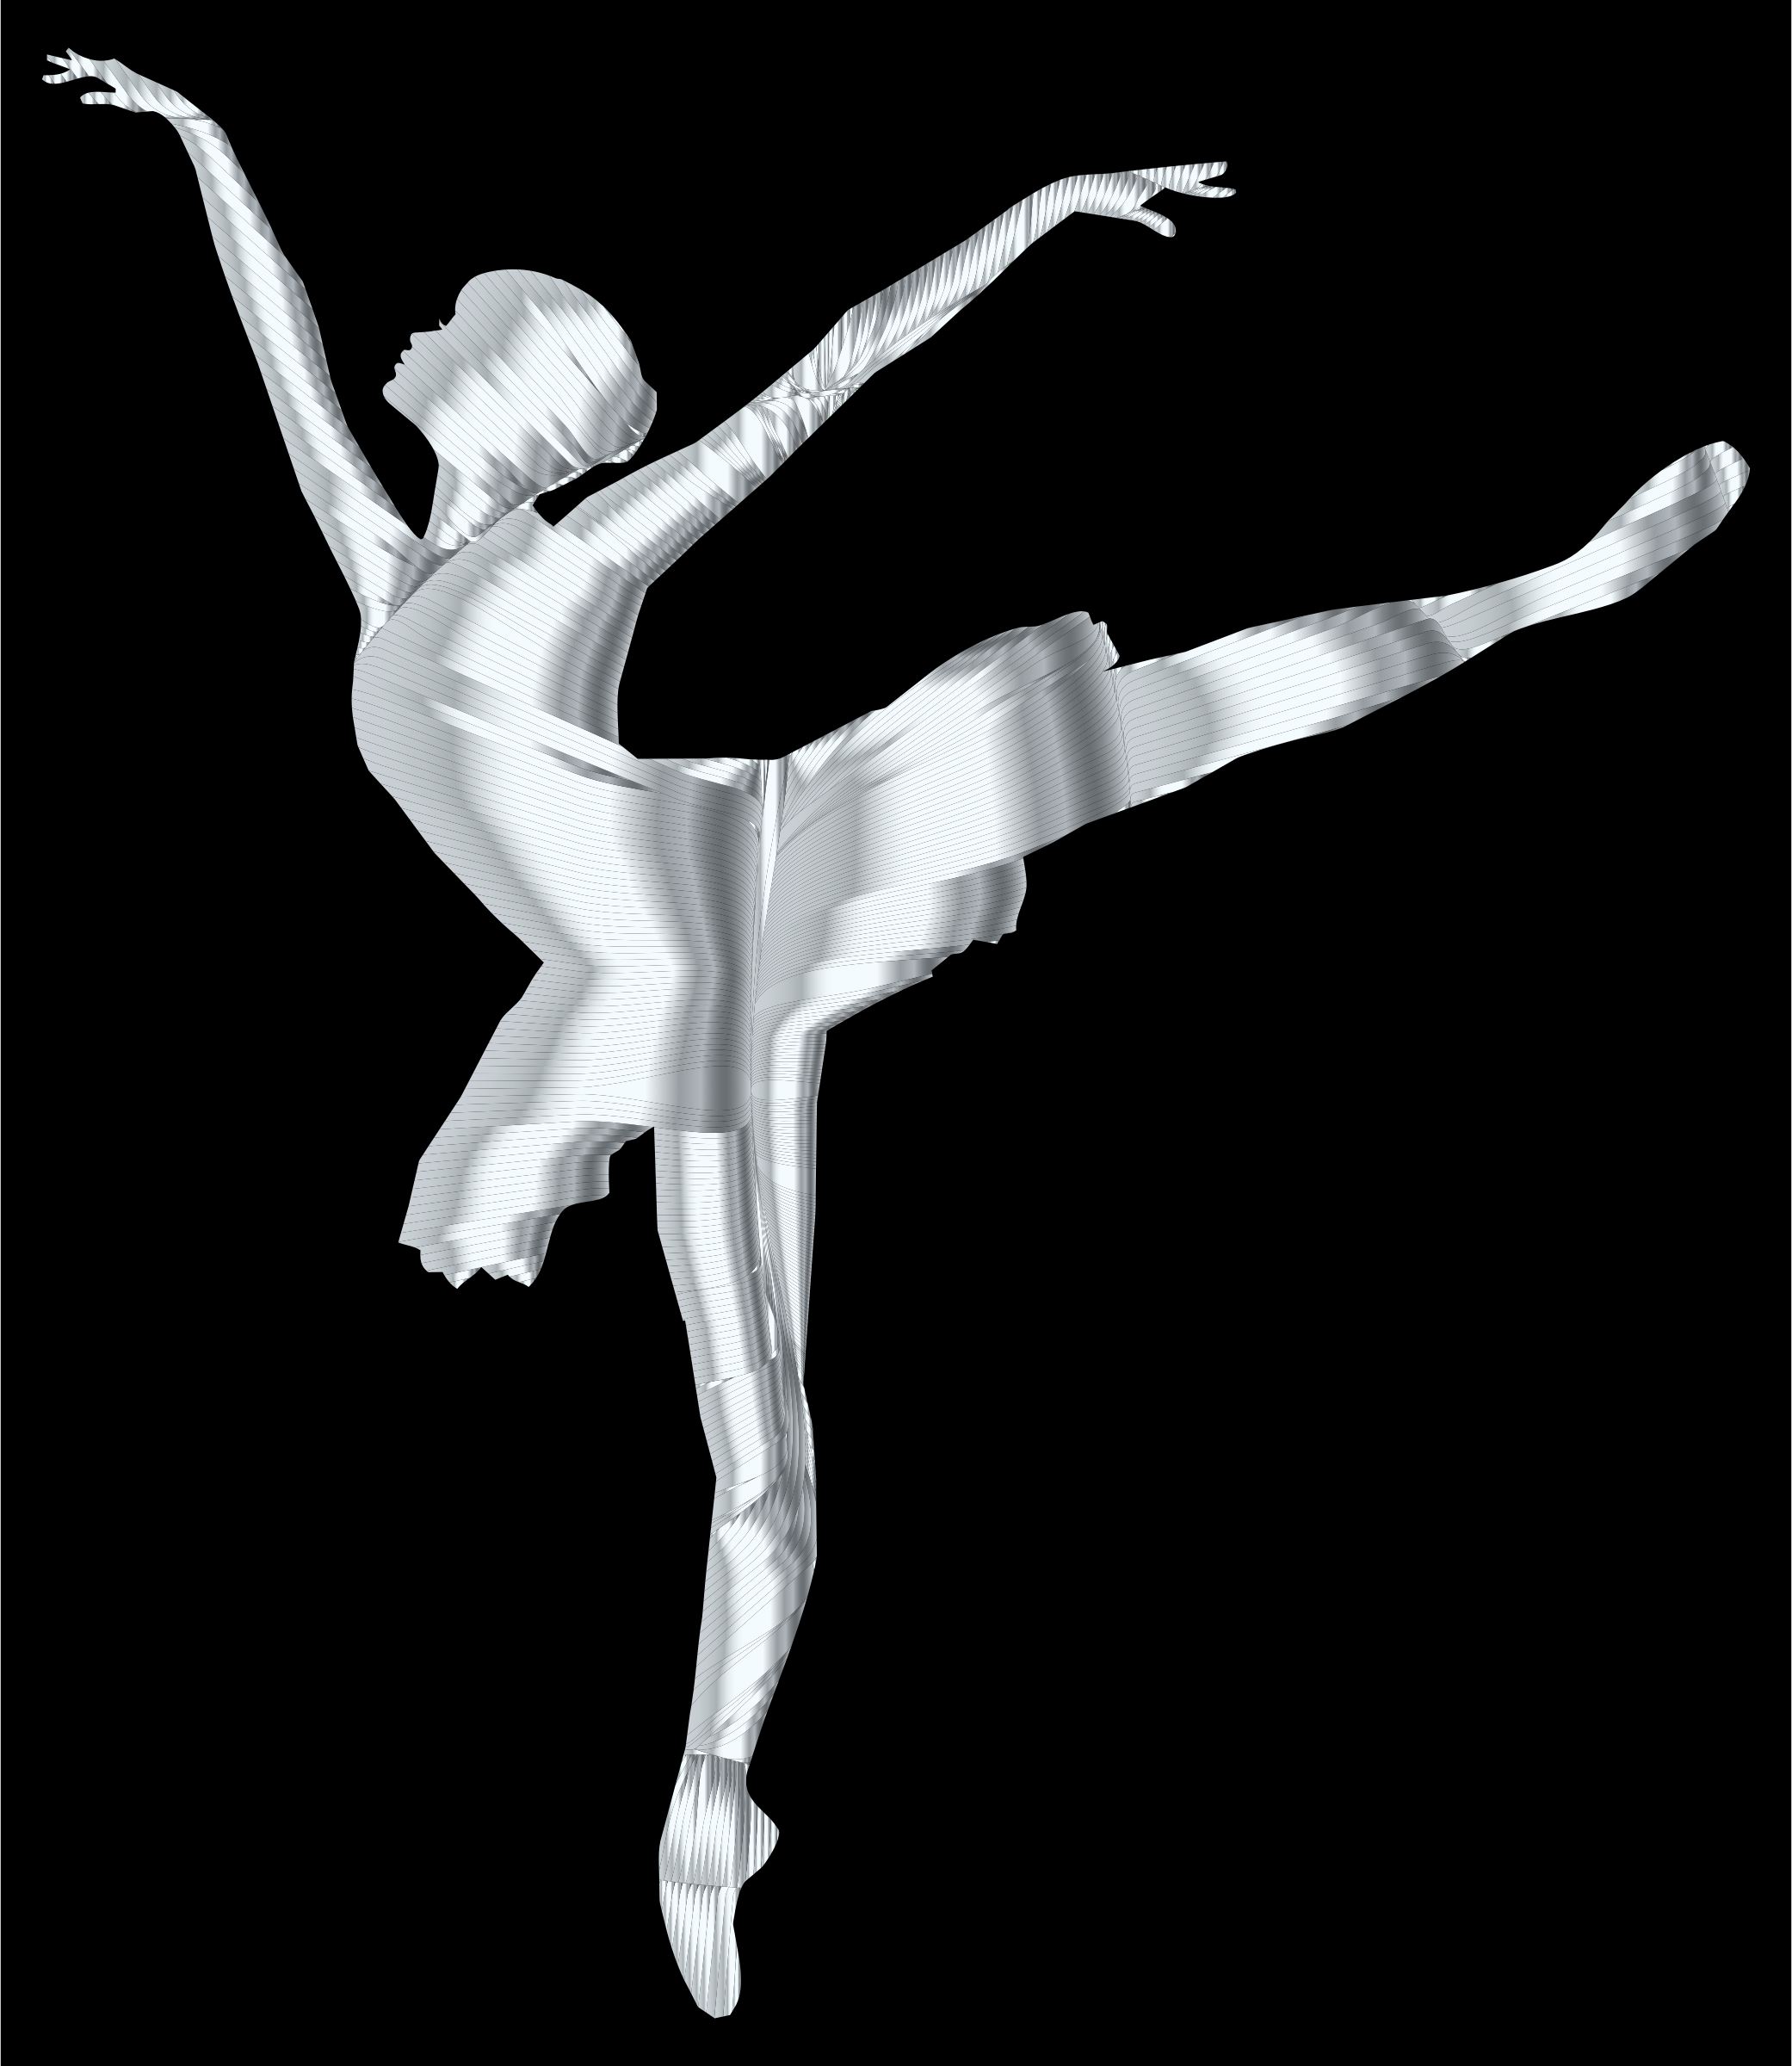 Silver Graceful Ballerina Silhouette by GDJ